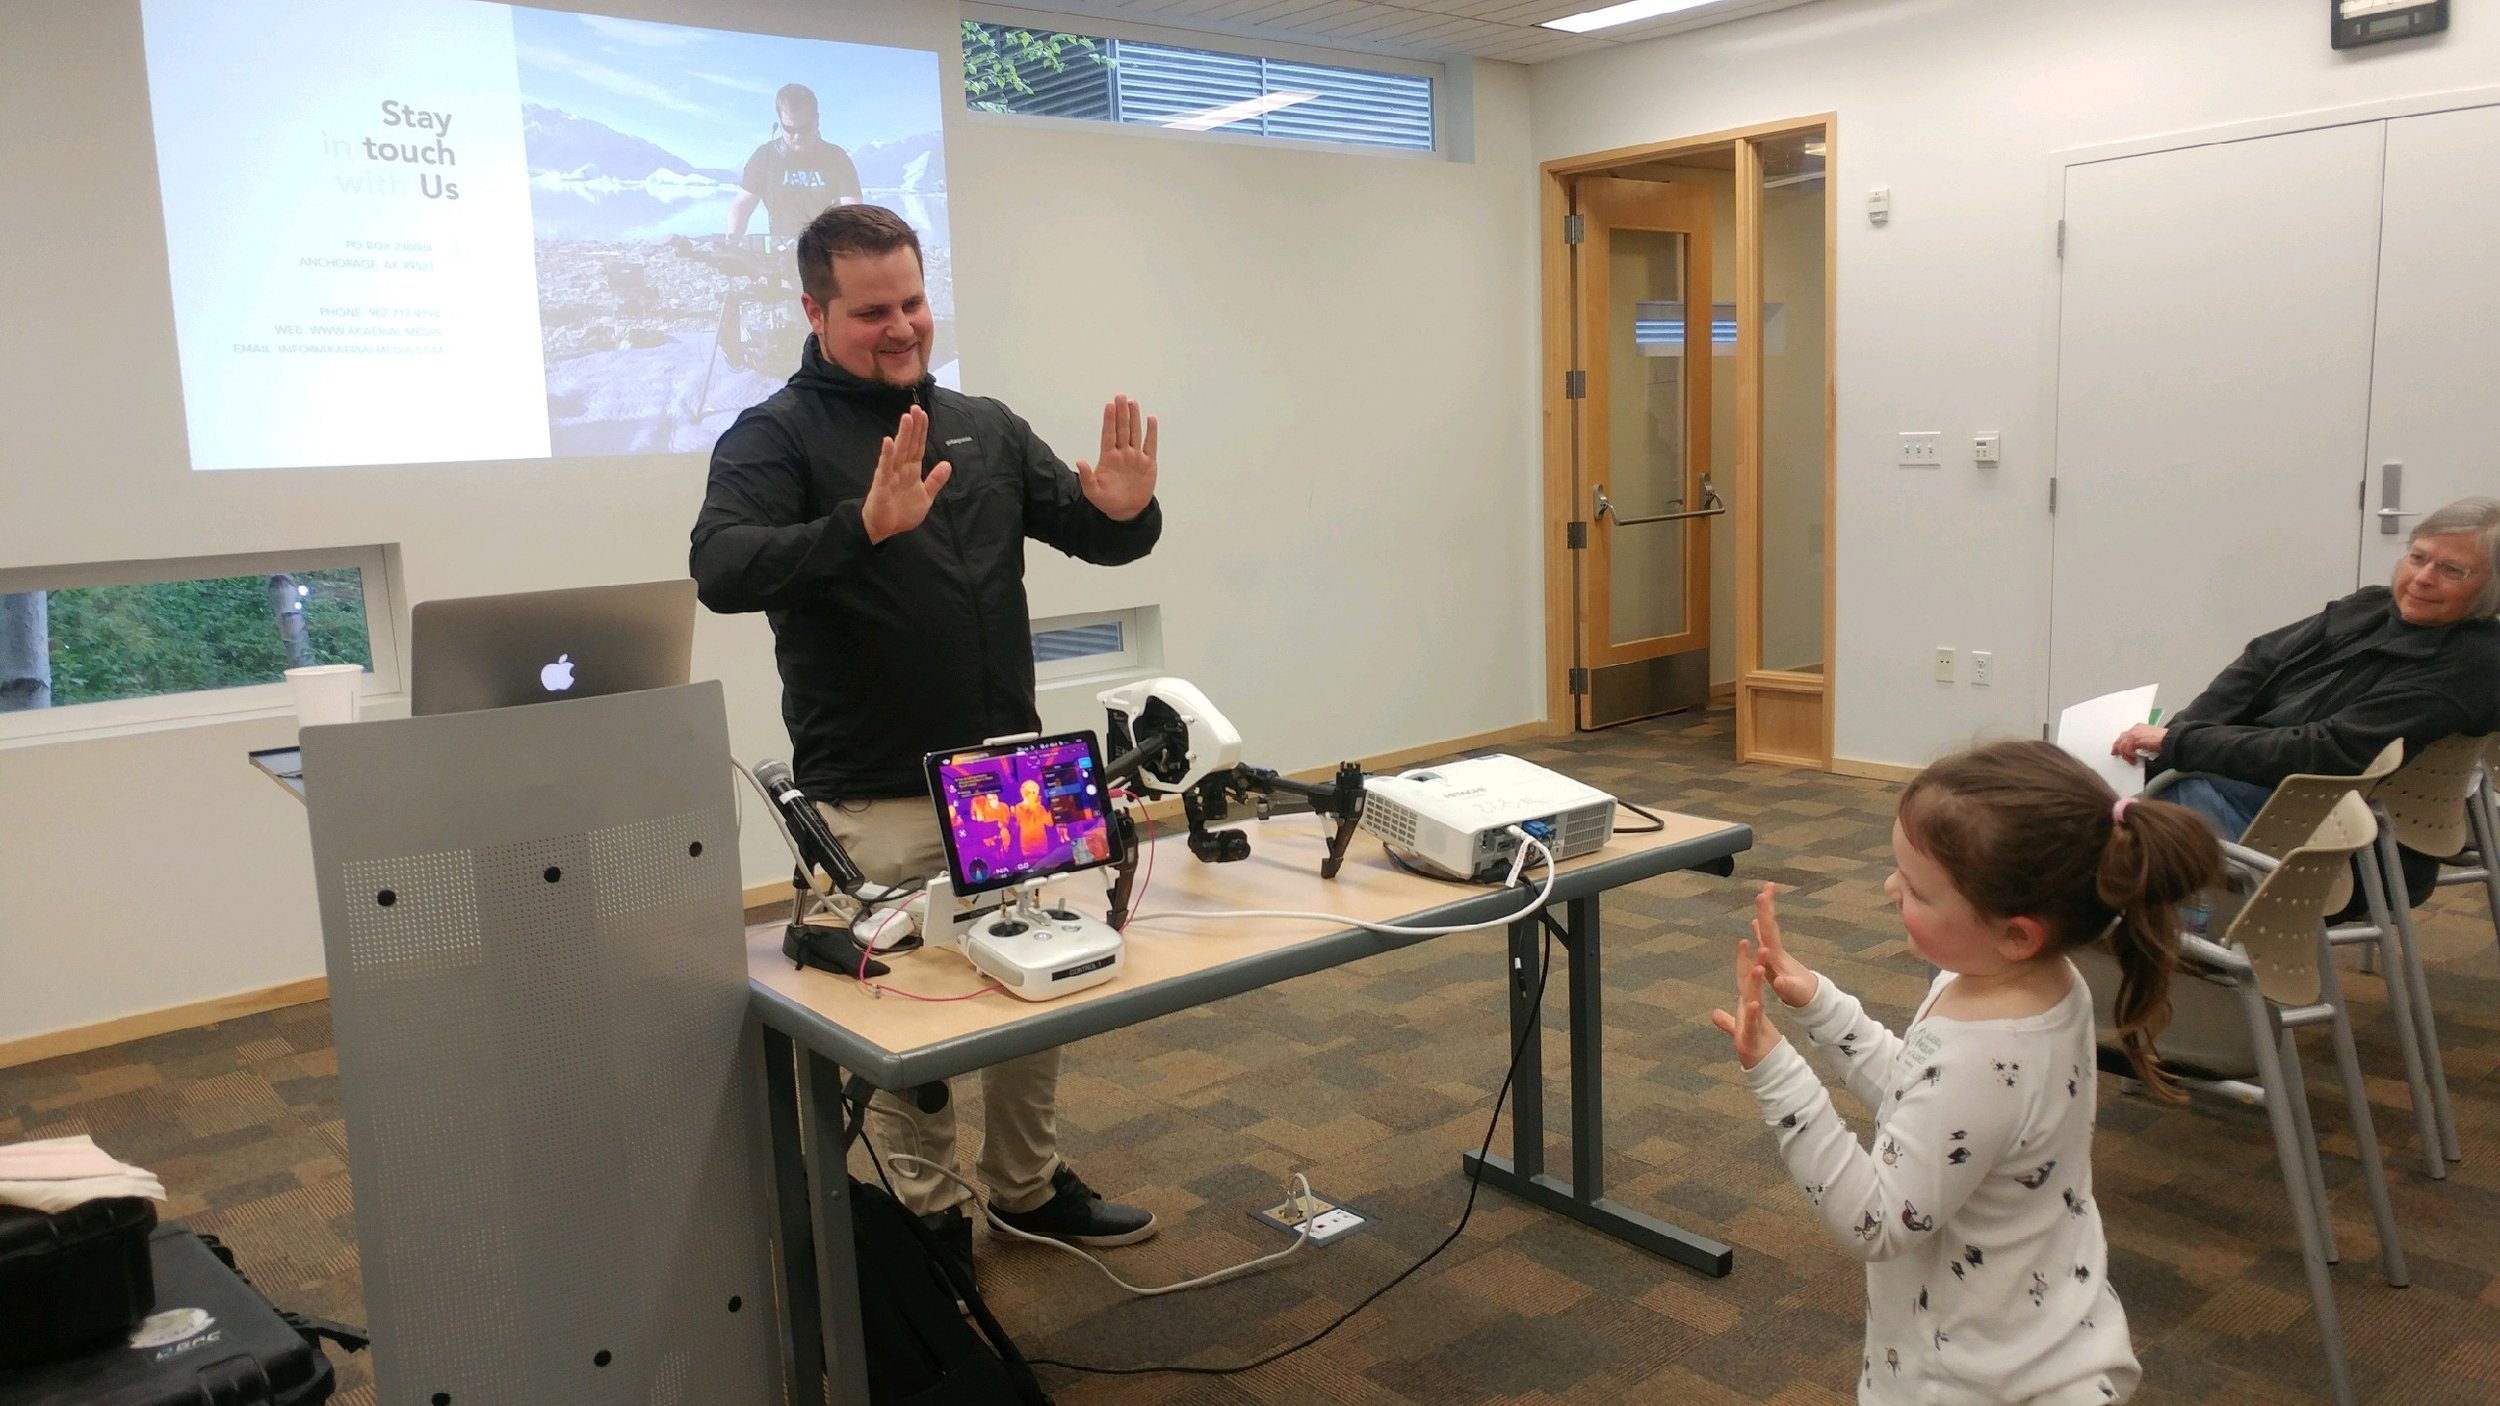 Presenter Ryan Marlow, Co-Founder of Alaska Aerial Media, shows Ellie how drones can use heat sensing technology to detect whales under water